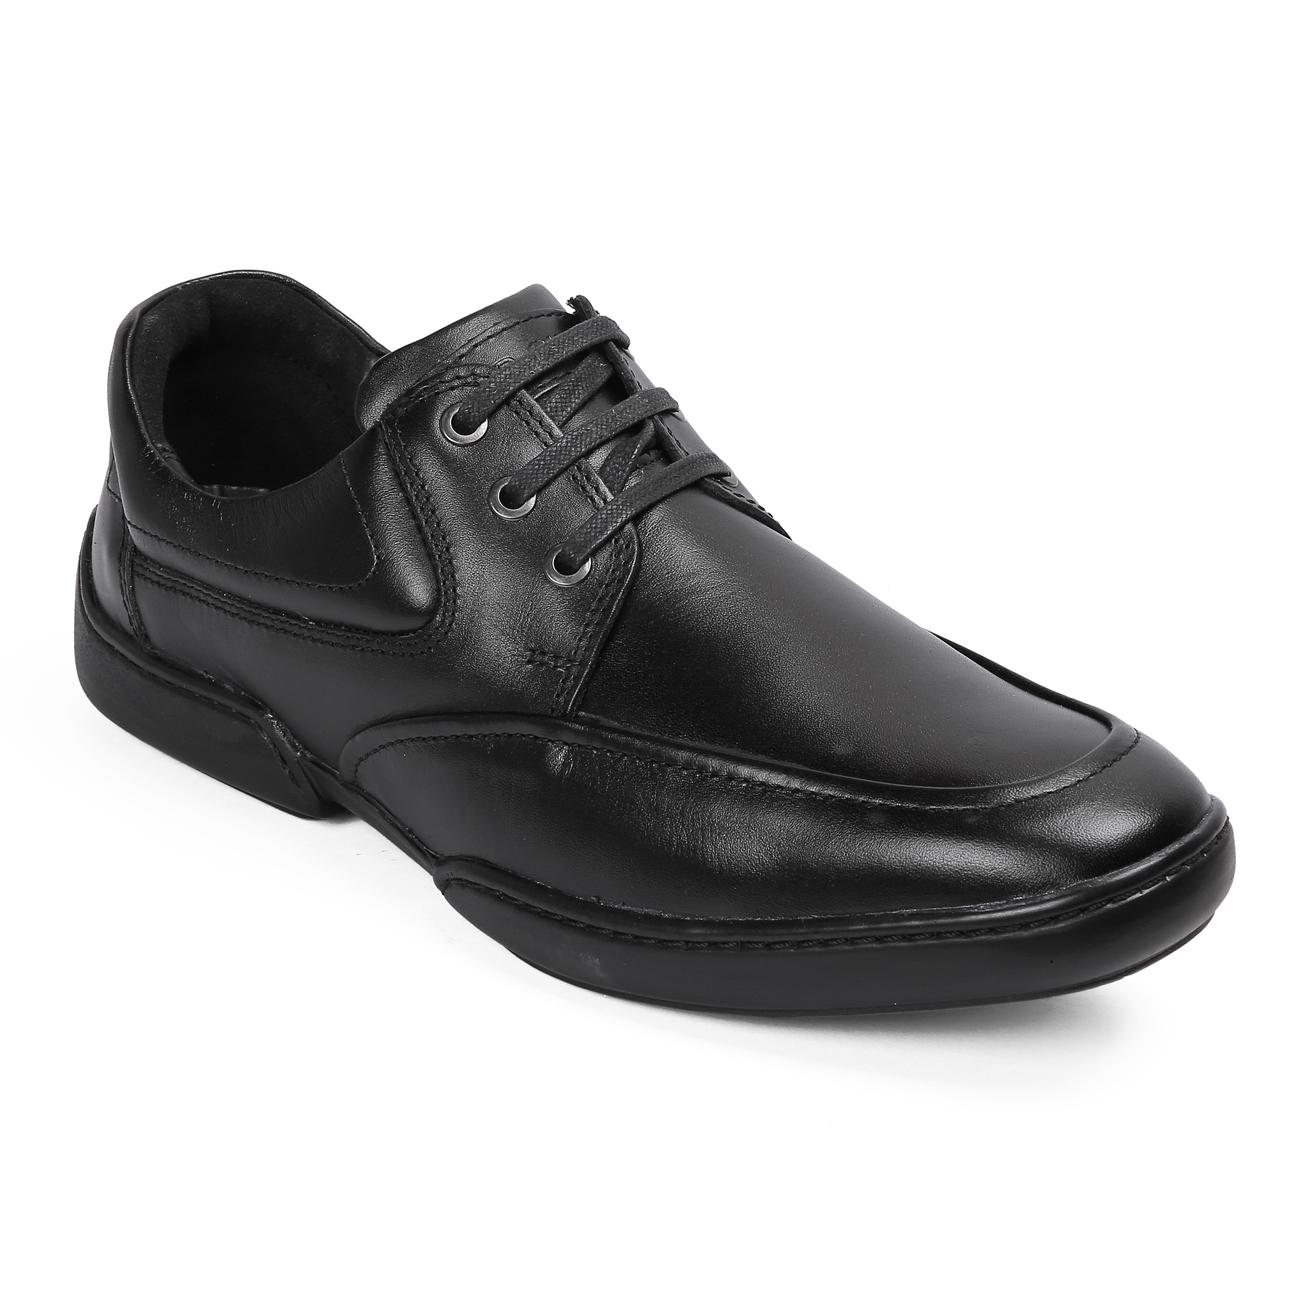 black casual leather shoes online